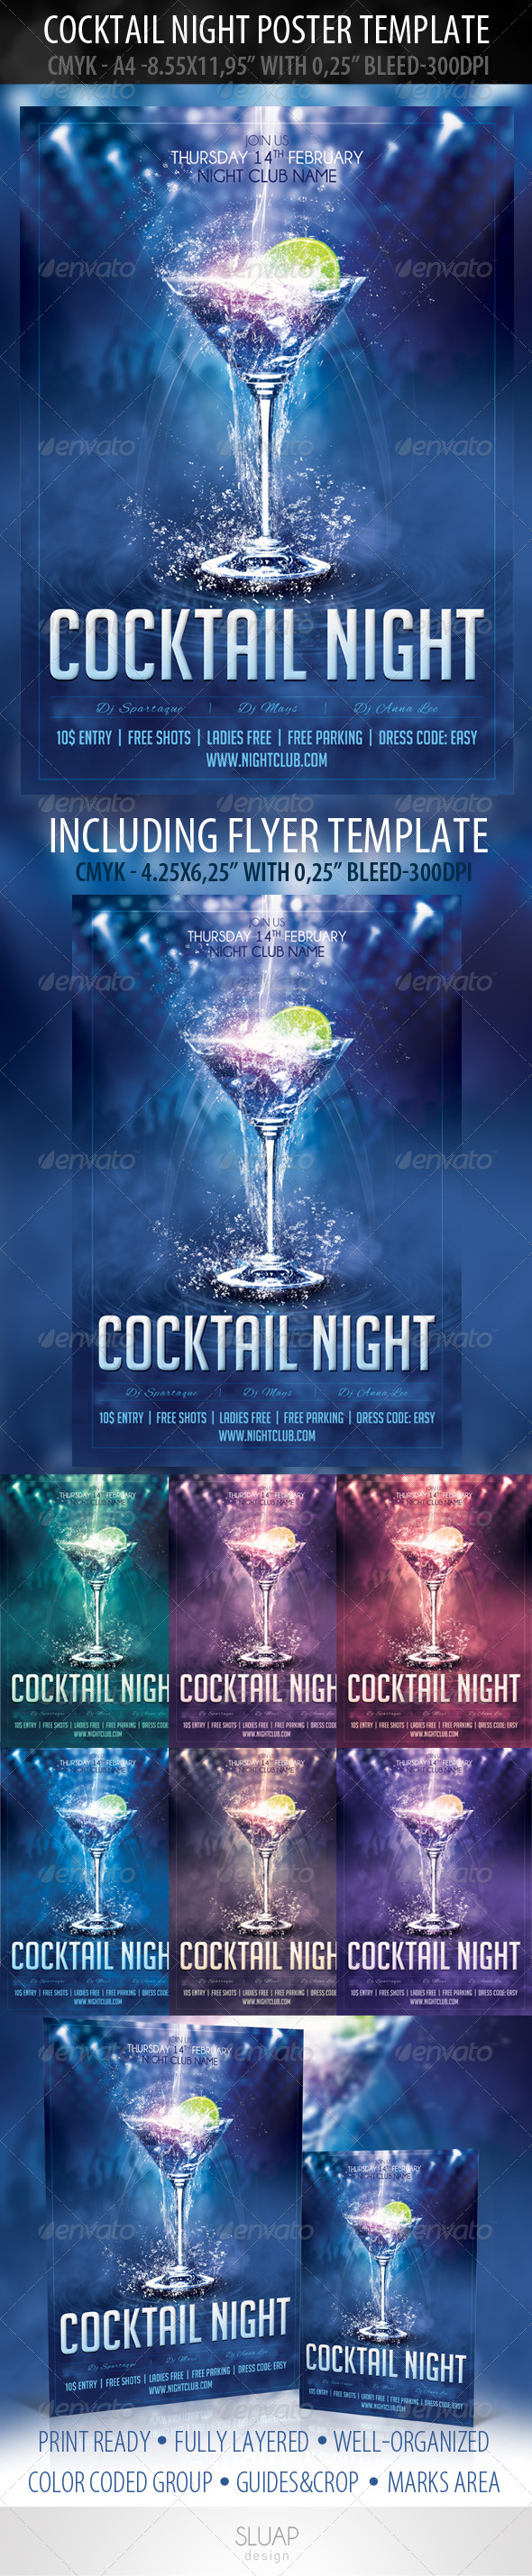 Cocktail Night Poster Template & Cocktail Night Flyer - Clubs & Parties Events